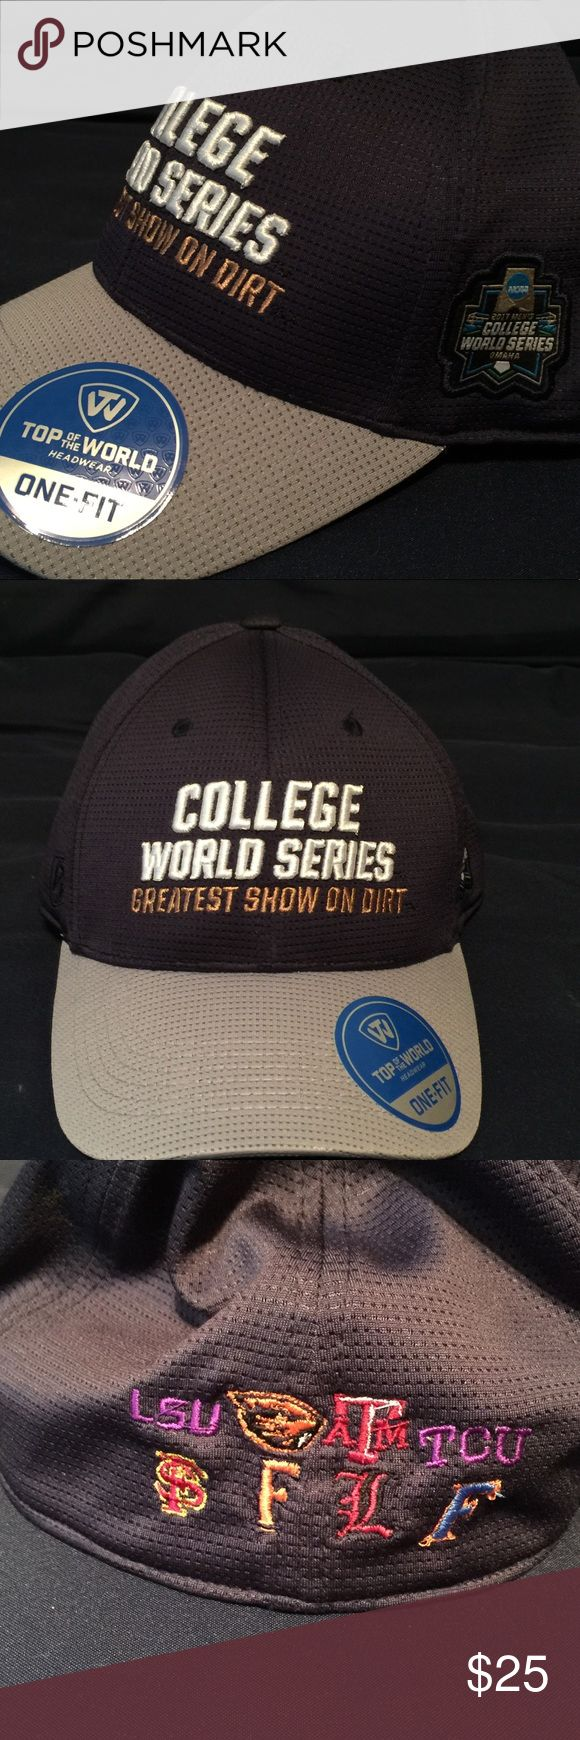 College World Series Ball Cap This is navy blue crown with gray bill. It is new with tags from the college World Series in Omaha NE.  This cap features the college logos embroidered on the back.  It is flex Fit One size unisex. NCAA Accessories Hats